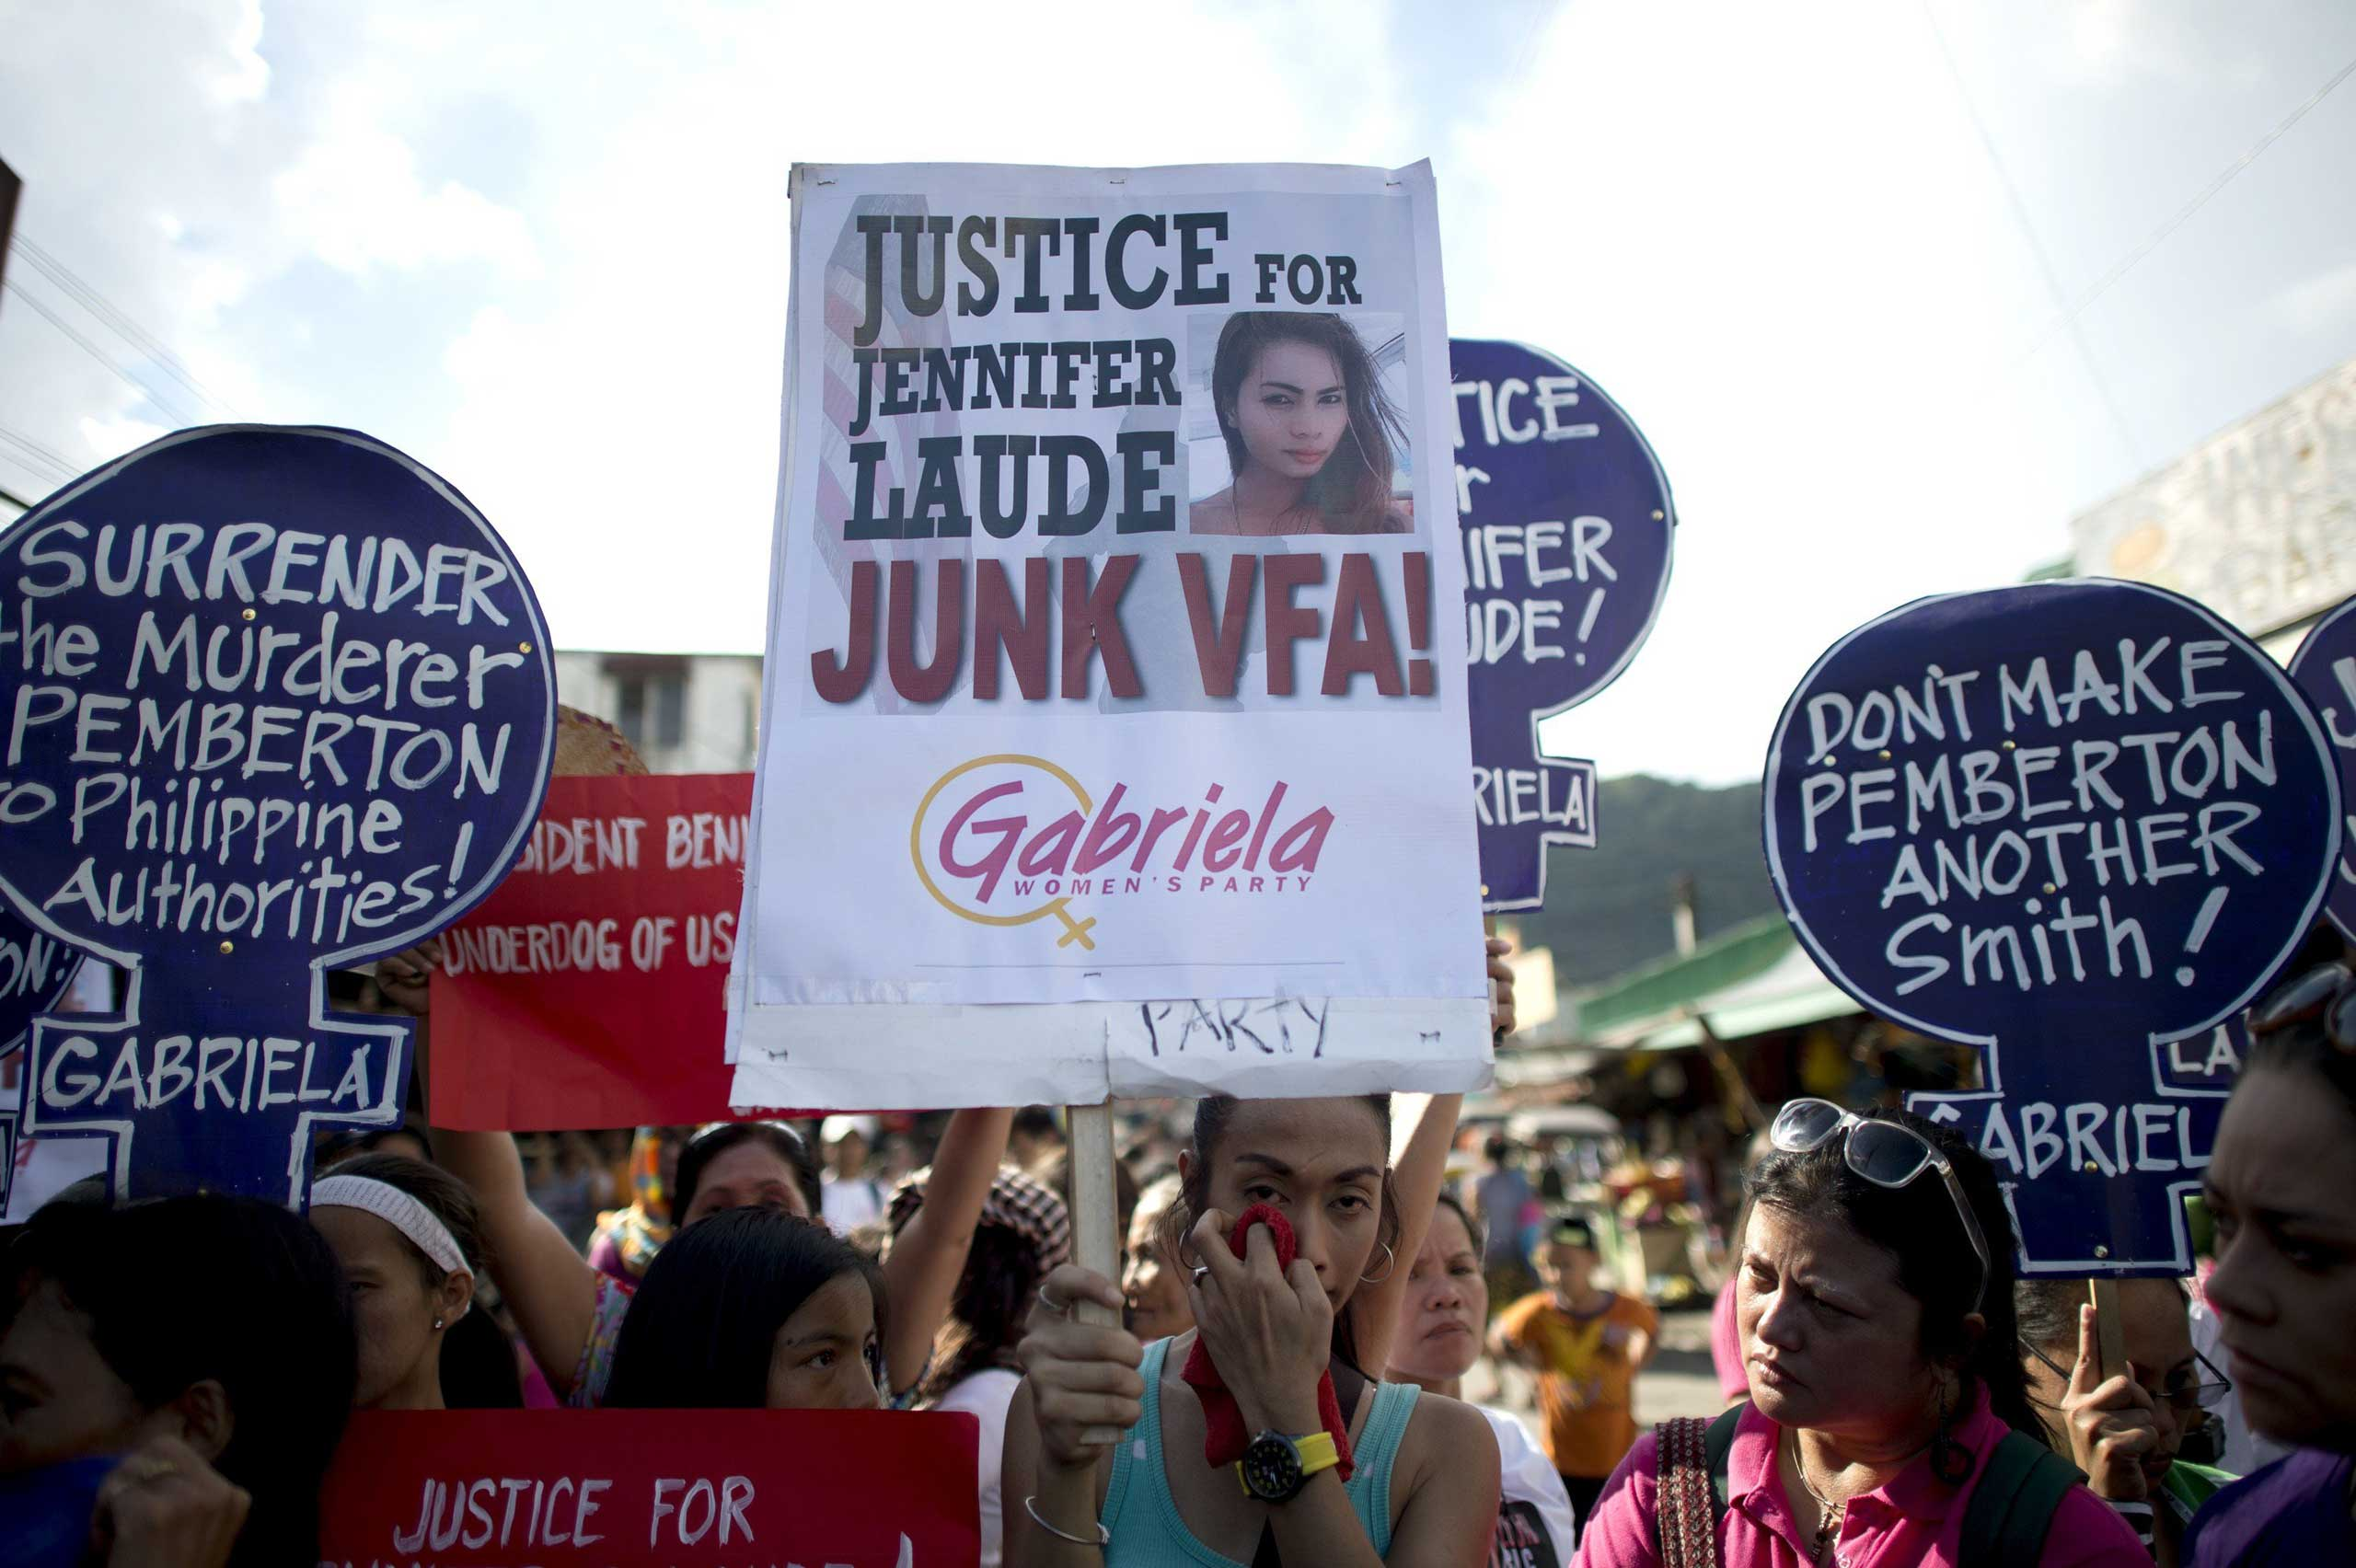 Supporters of murdered Filipino transgender Jeffrey Laude, also known as  Jennifer , hold a protest near the Hall of Justice where the preliminary hearing for the murder case is being held at the northern Philippine city of Olongapo on Oct. 10, 2014.